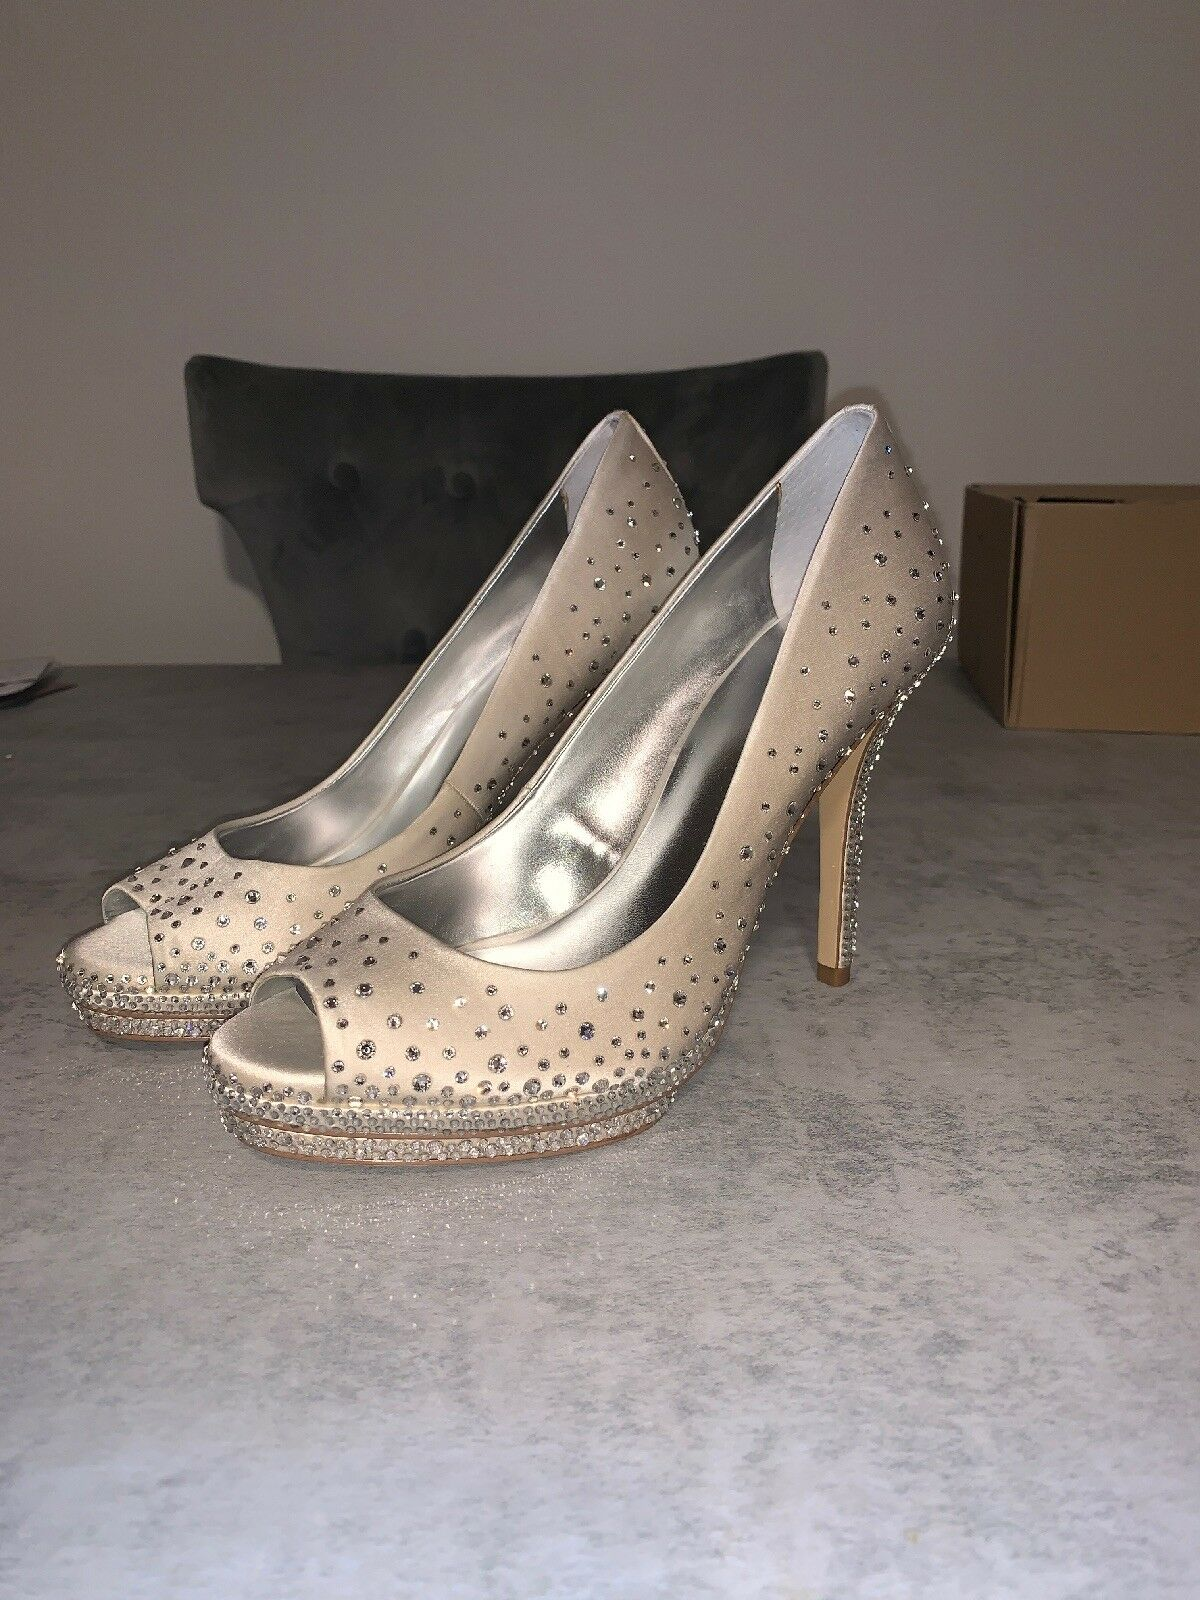 Crystal   Rhinestone Platform Pump shoes Size 8